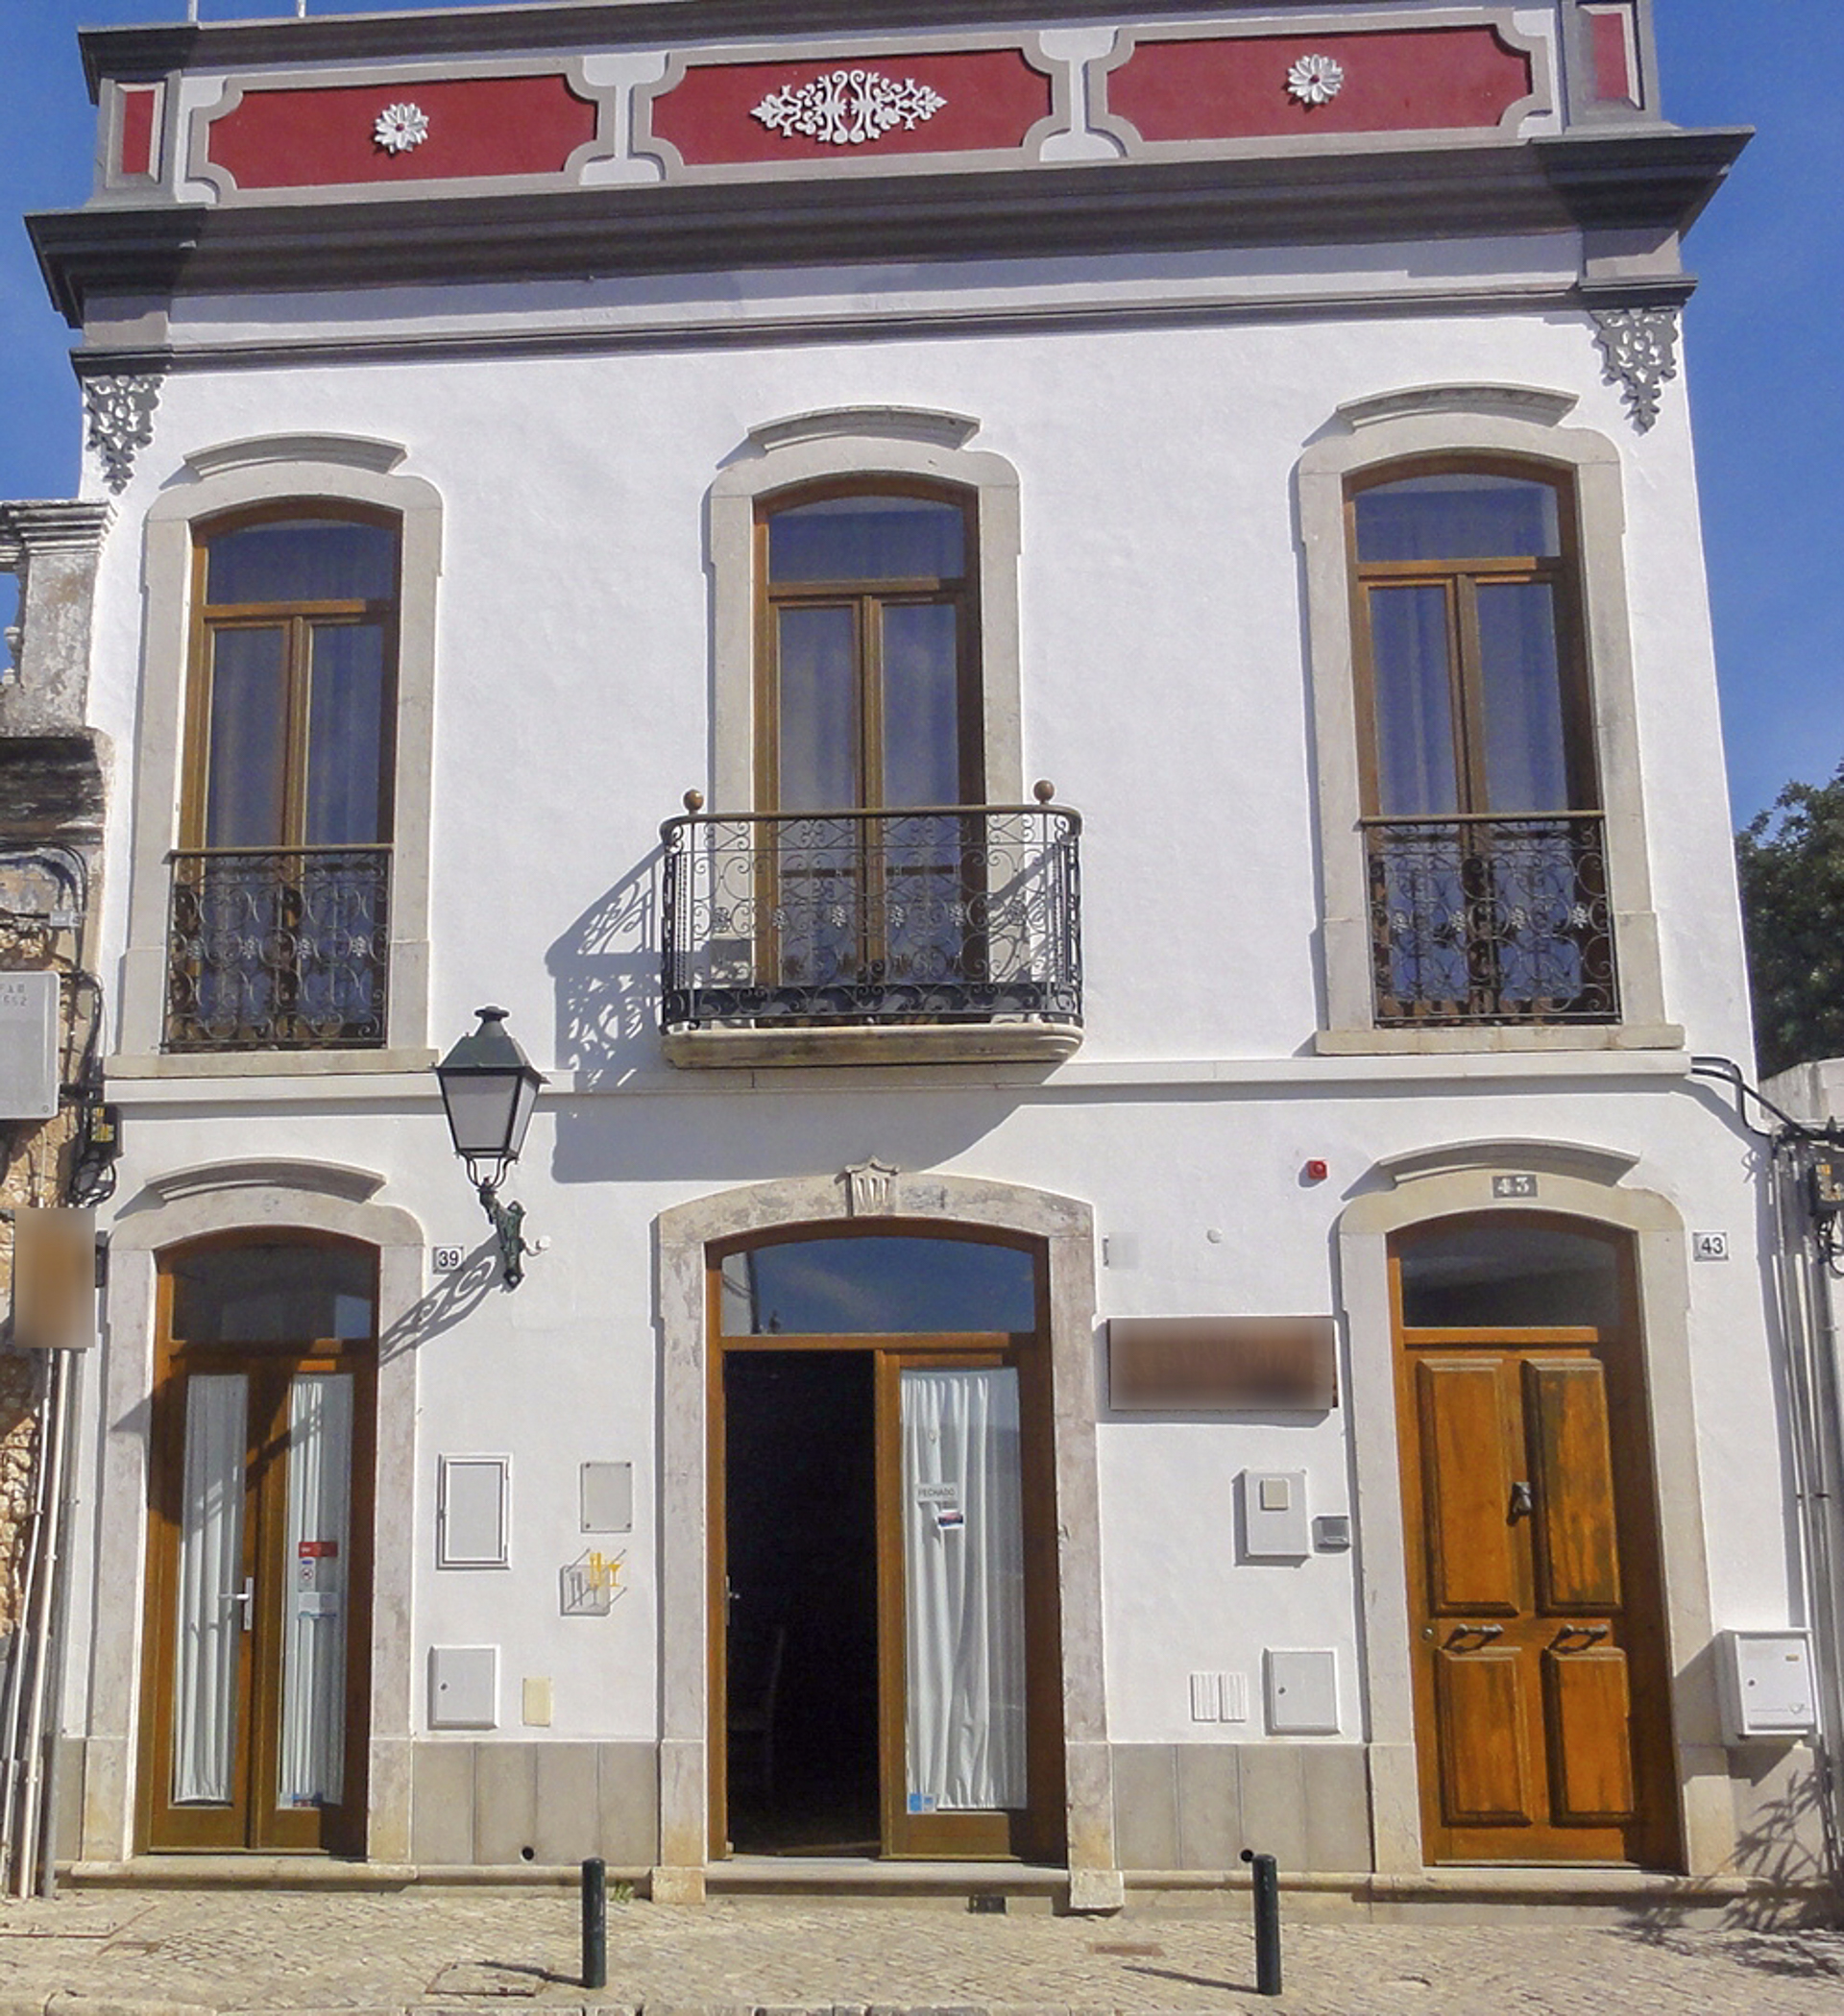 Attractive business idea with accommodation in Estoi, East Algarve | SB1177 Great business opportunity - restaurant with 53 seats, with all equipment. On top, there are two independent apartments, renovated and with large terraces. Only a few minutes from the Pousada de Estoi.